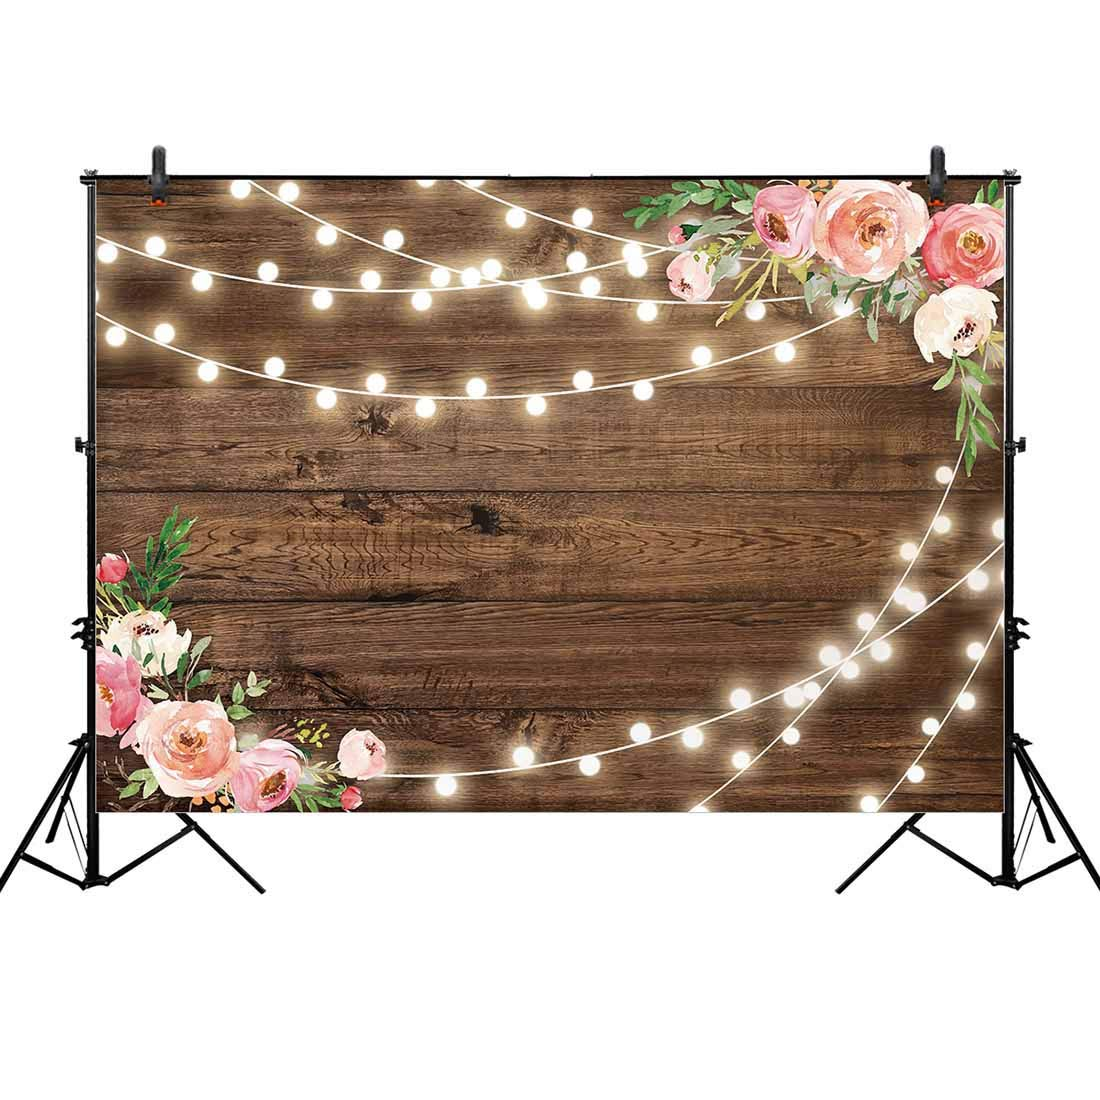 Allenjoy 10x8ft Fabric Rustic Floral Wooden Backdrop for Baby Shower Bridal Wedding Studio Photography Pictures Brown Wood Floor Flower Wall Background Newborn Birthday Party Banner Photo Shoot Booth